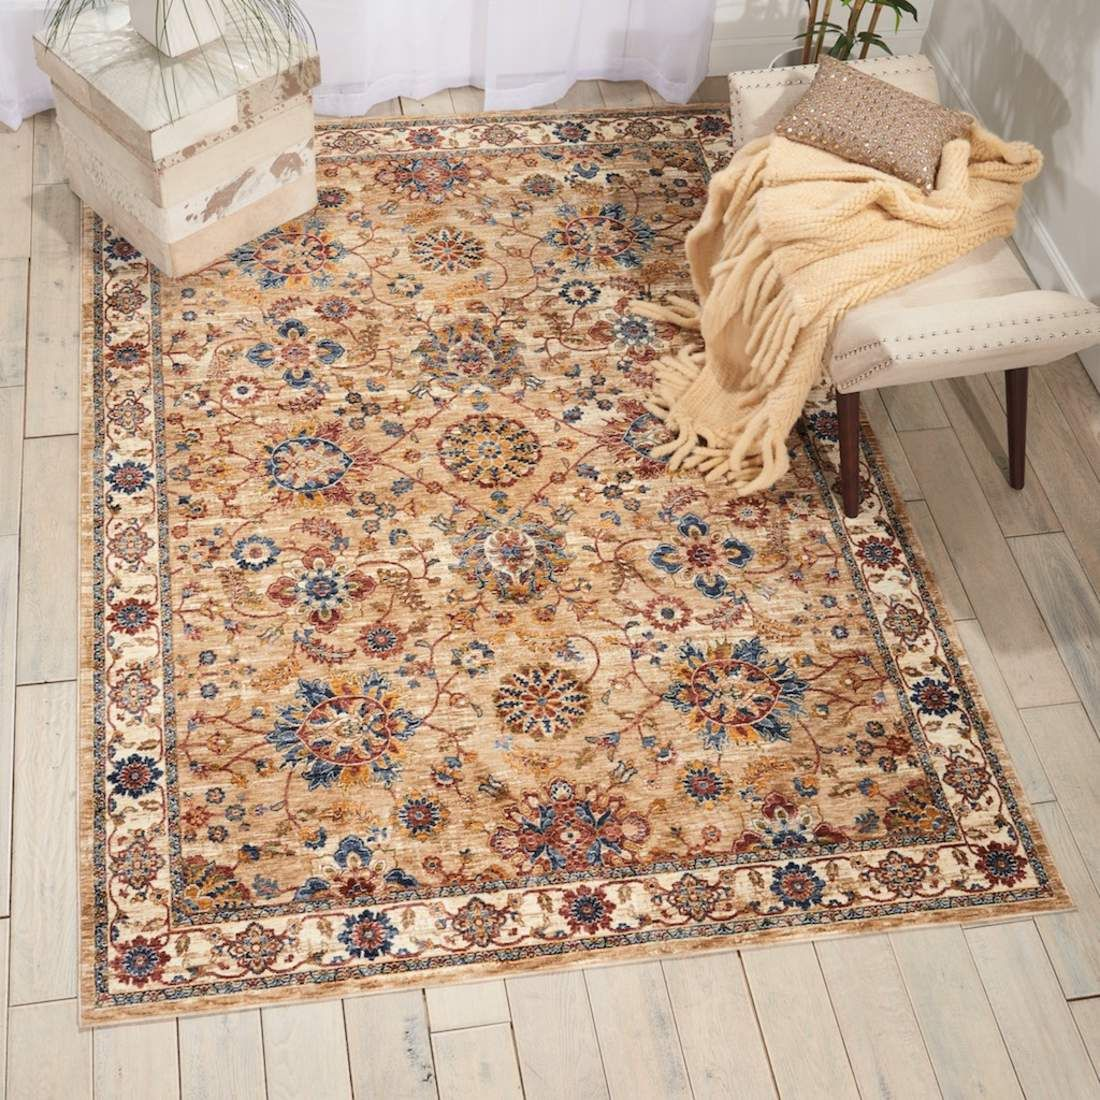 Lagos Natural Area Rugs Area Rugs Rugs